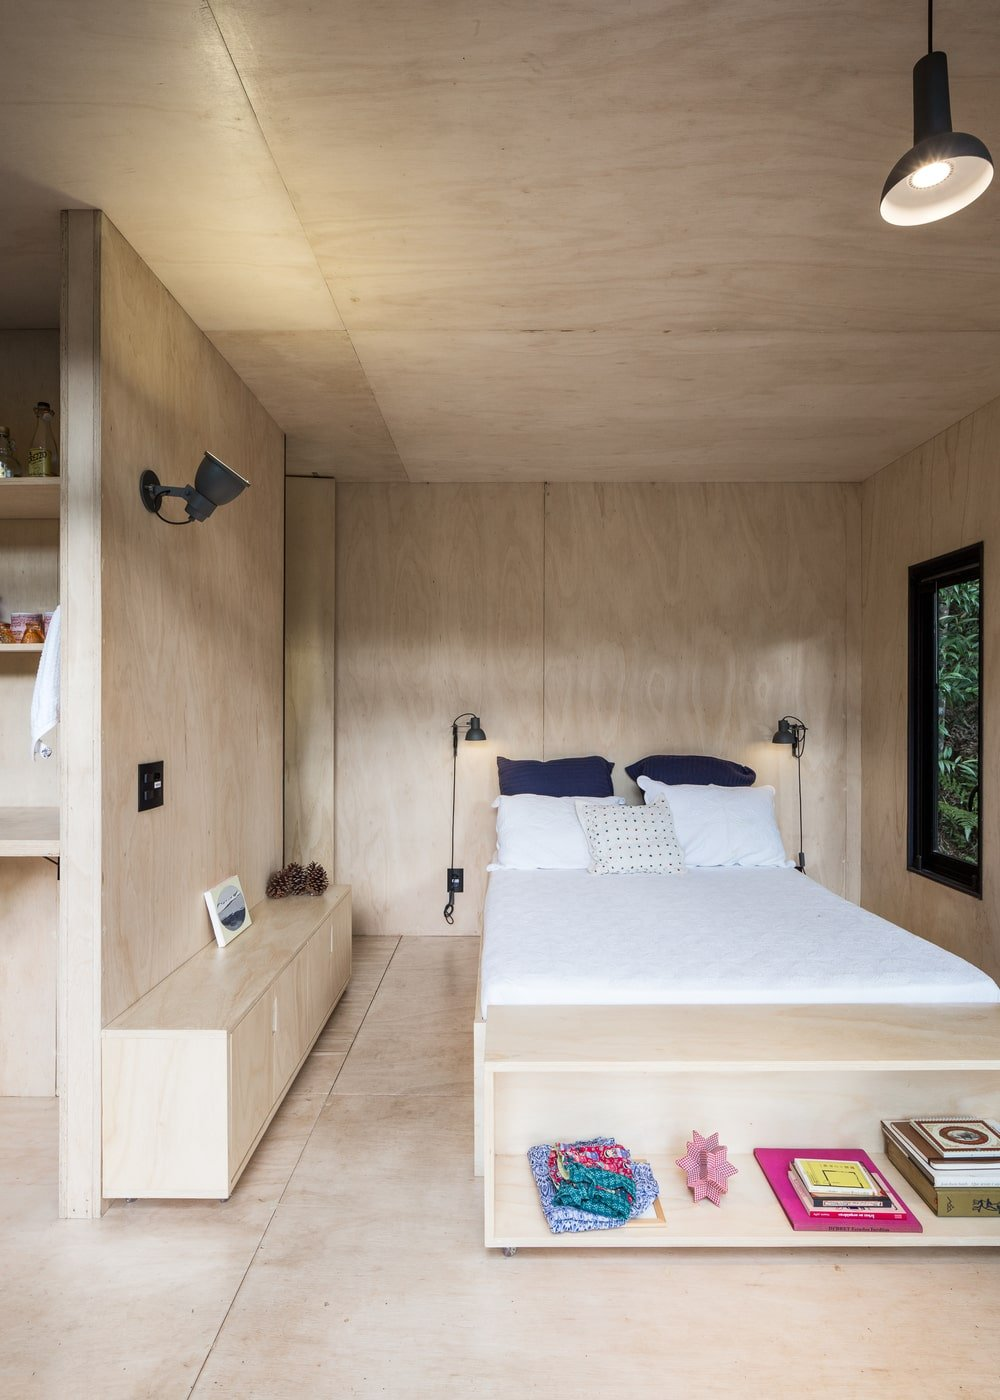 This is a closer look at the bedroom area that has built-in wooden structures and an alcove-like nook at the corner of the interior.